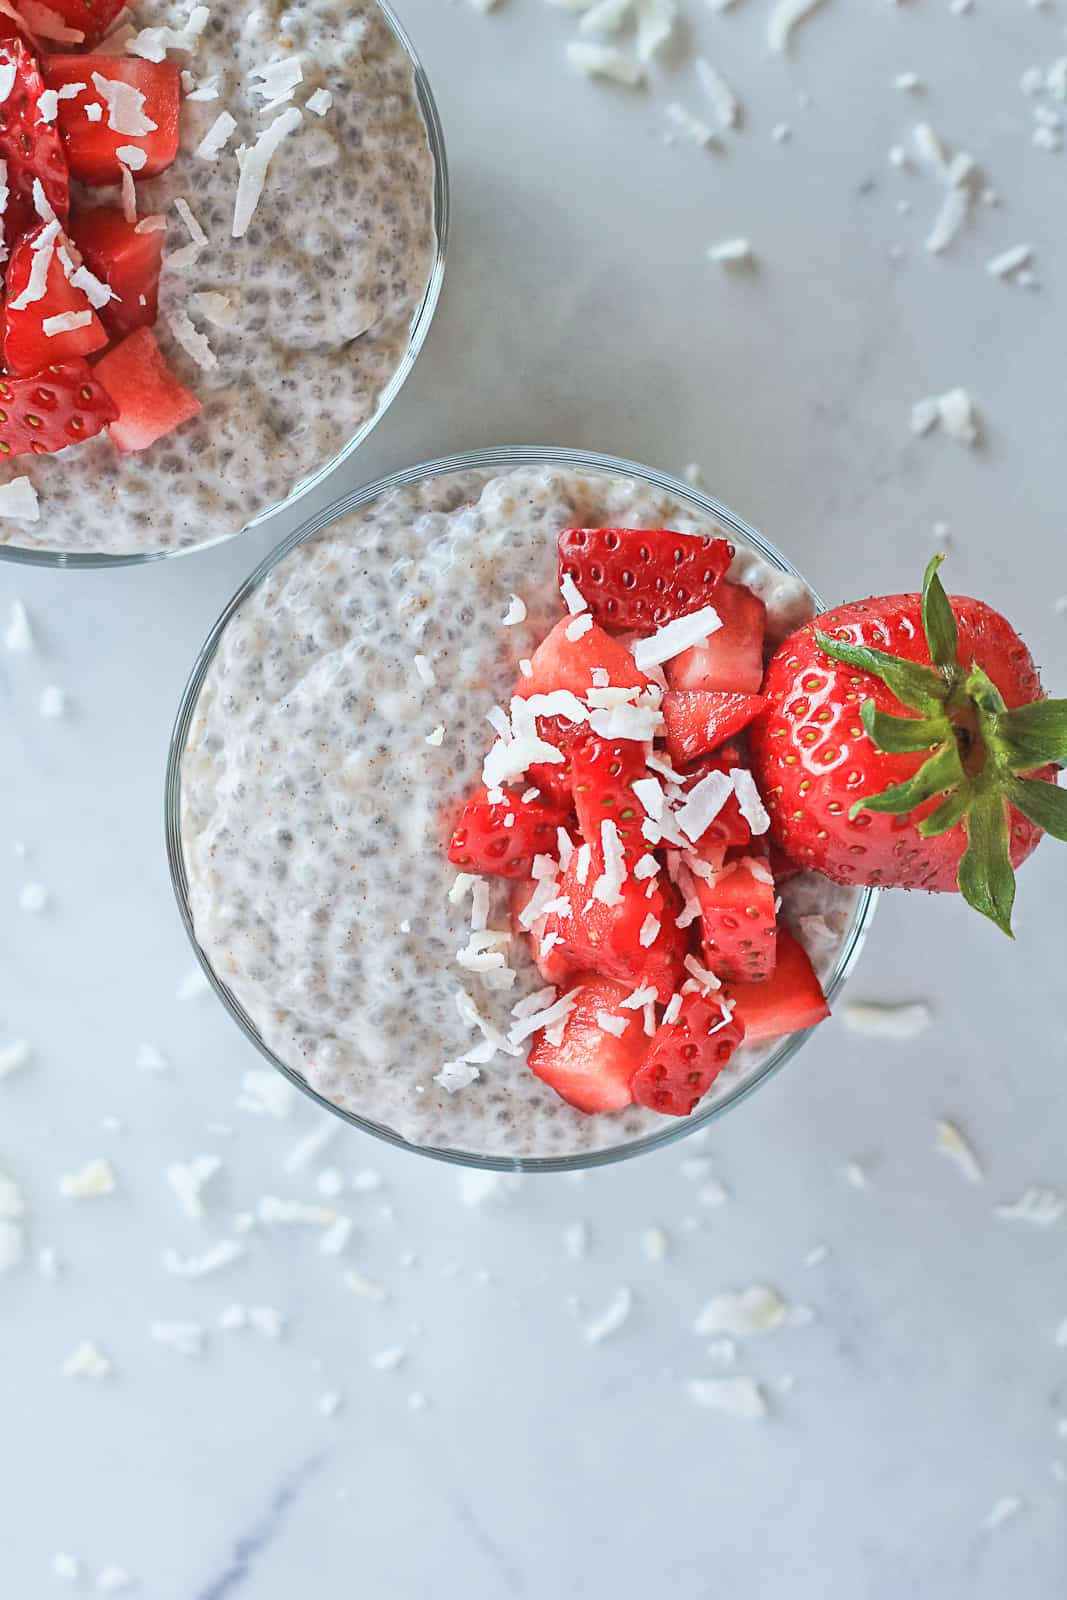 Top view of whole30 chia seed pudding.